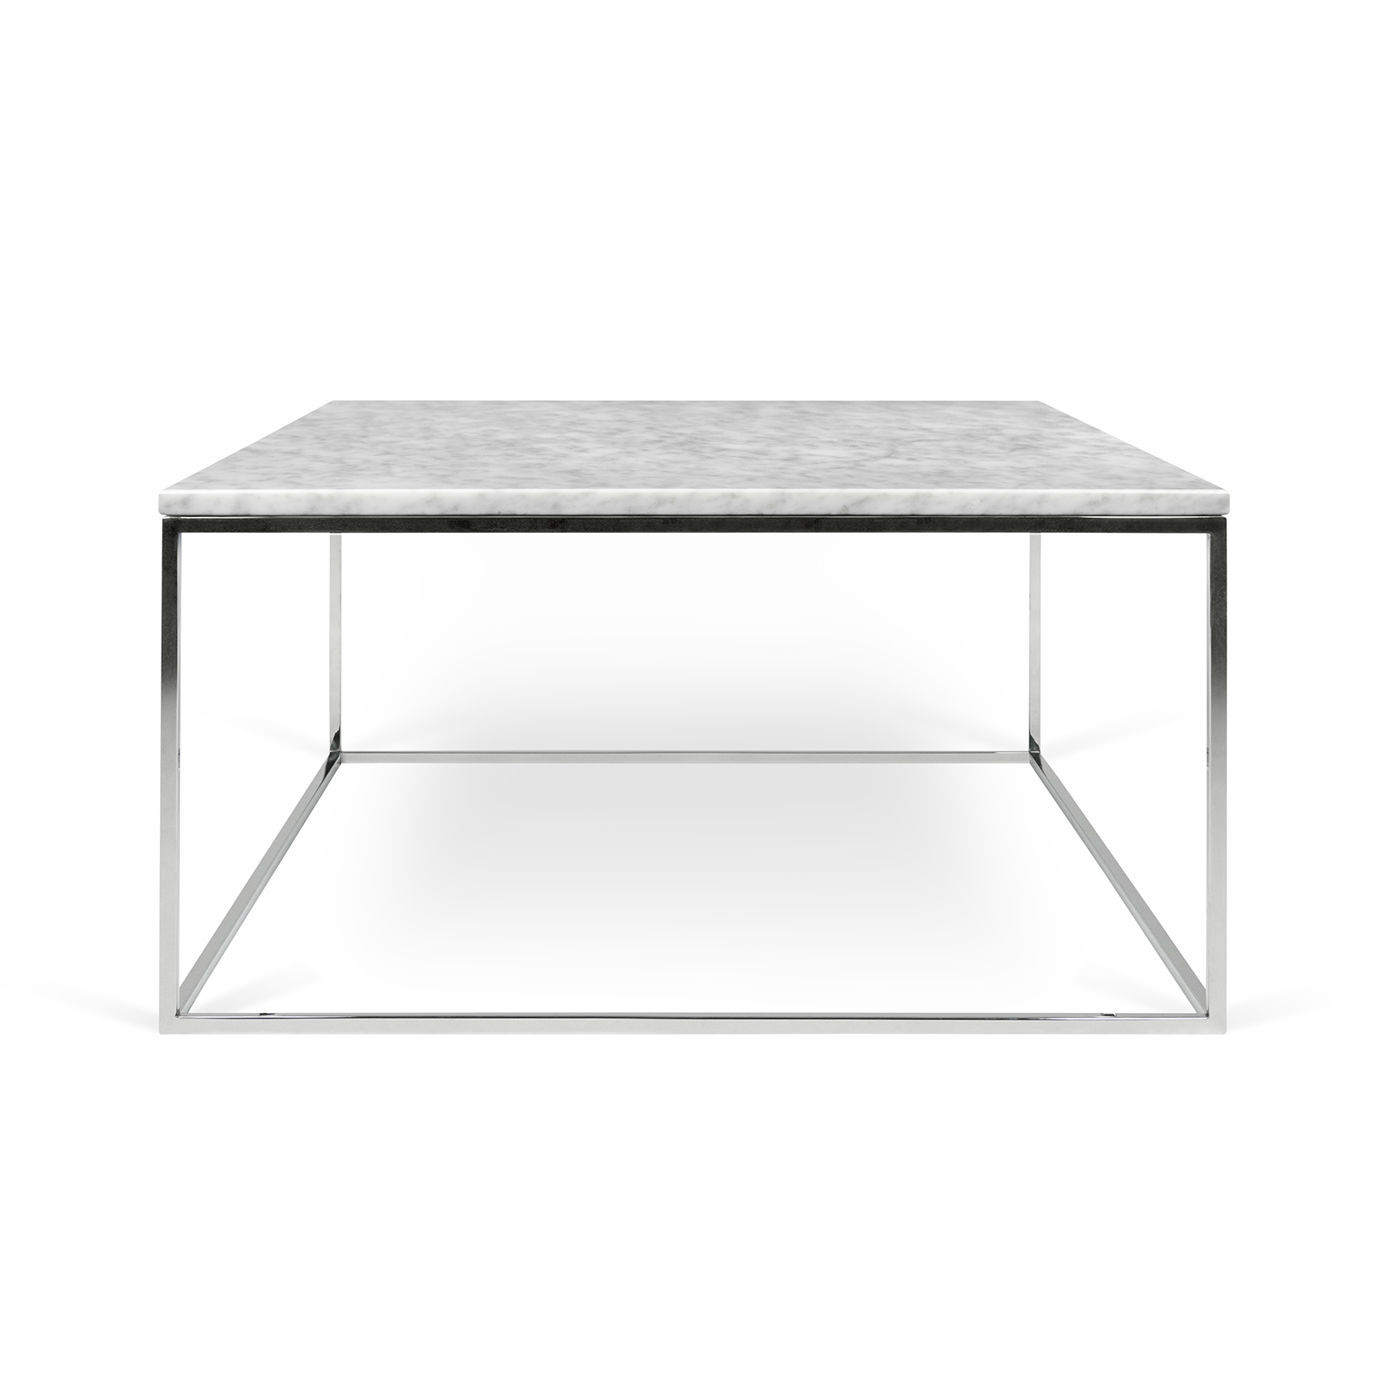 Contemporary Coffee Table Chrome Steel Marble Square Gleam